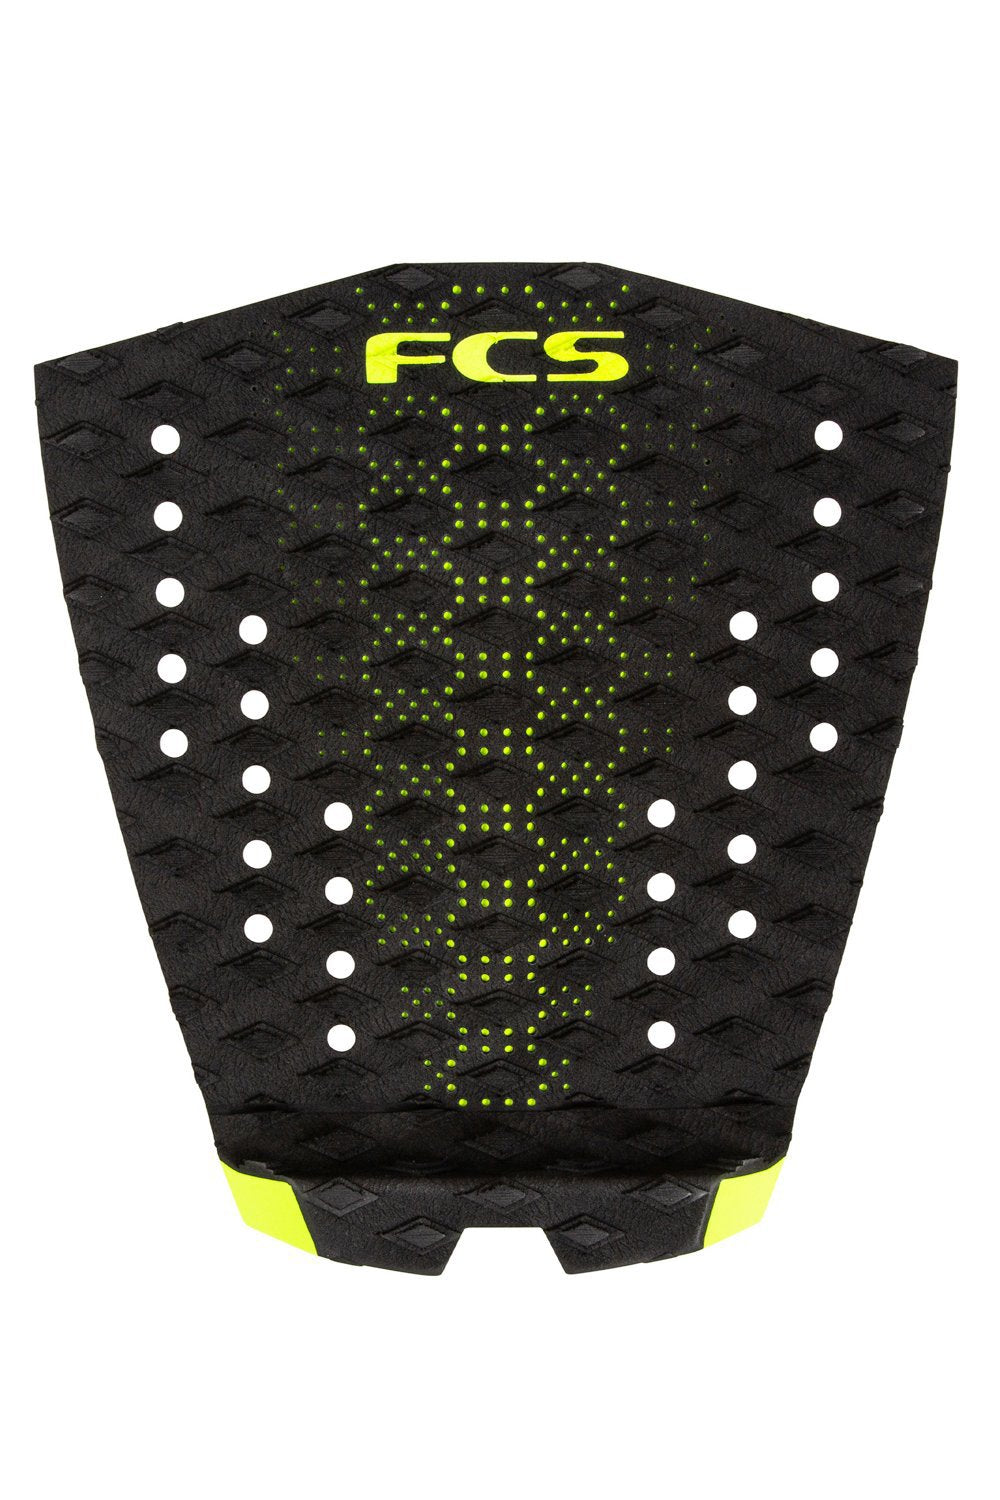 FCS T1 Traction Grip Pad